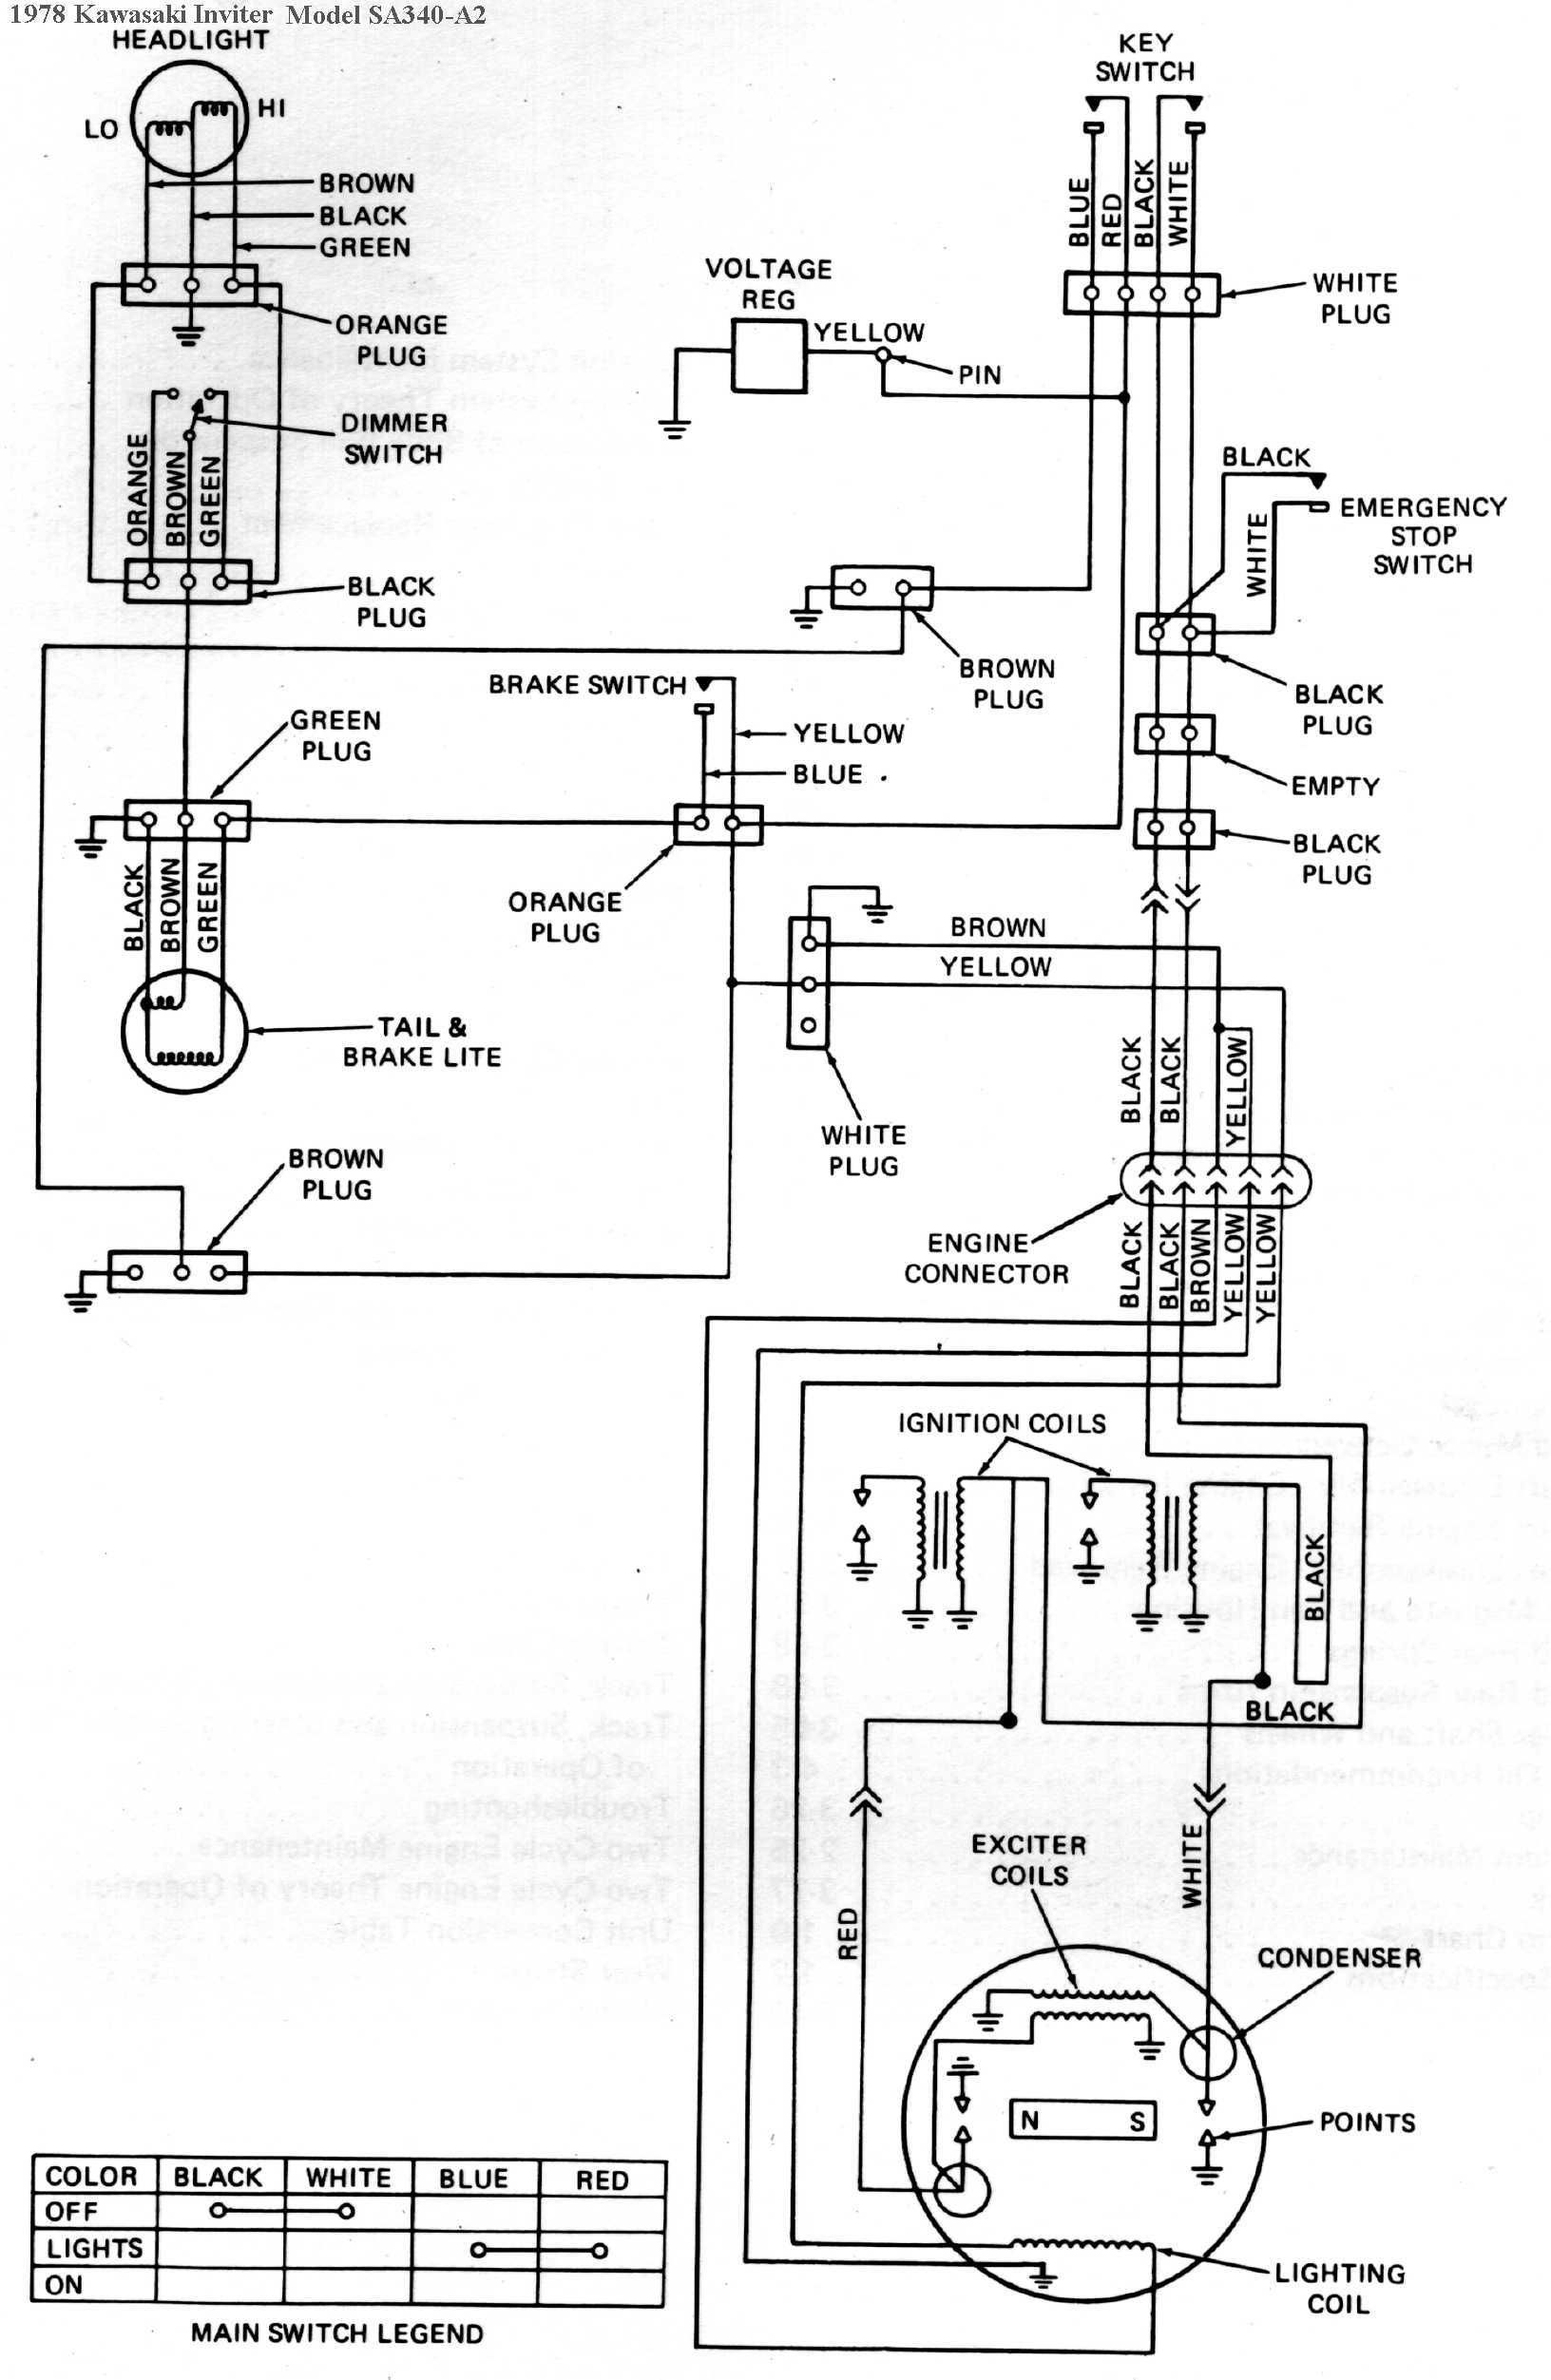 sst wiring diagram